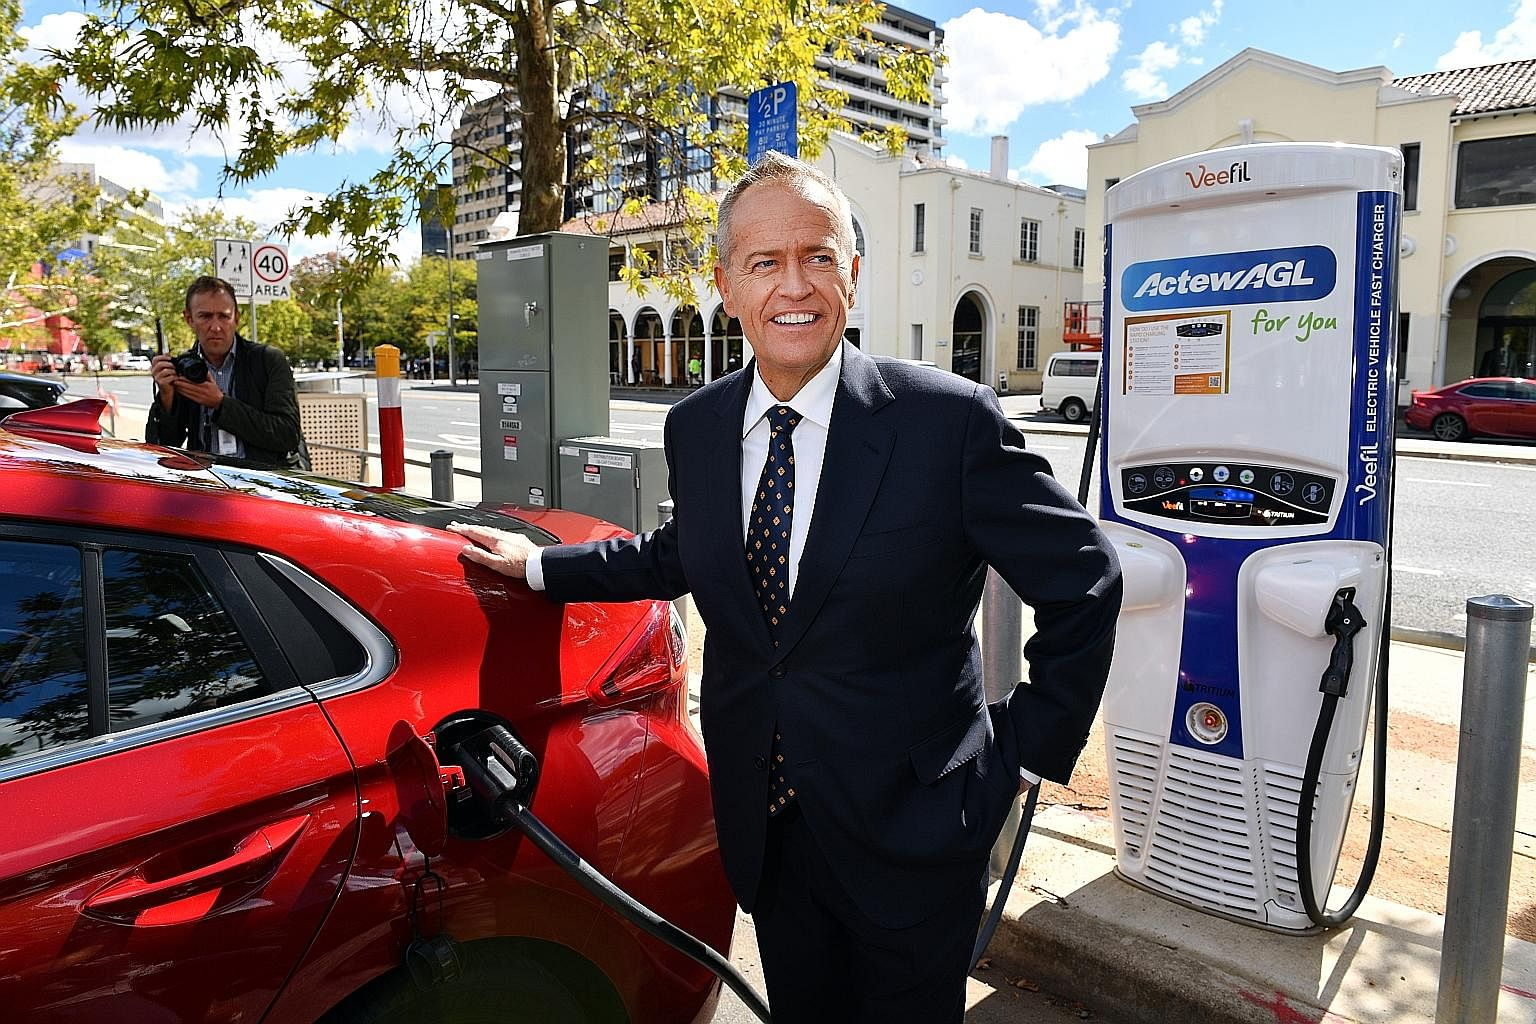 Labor leader Bill Shorten charging an electric car on April 1. The opposition party proposes building 200 fast-charging stations.